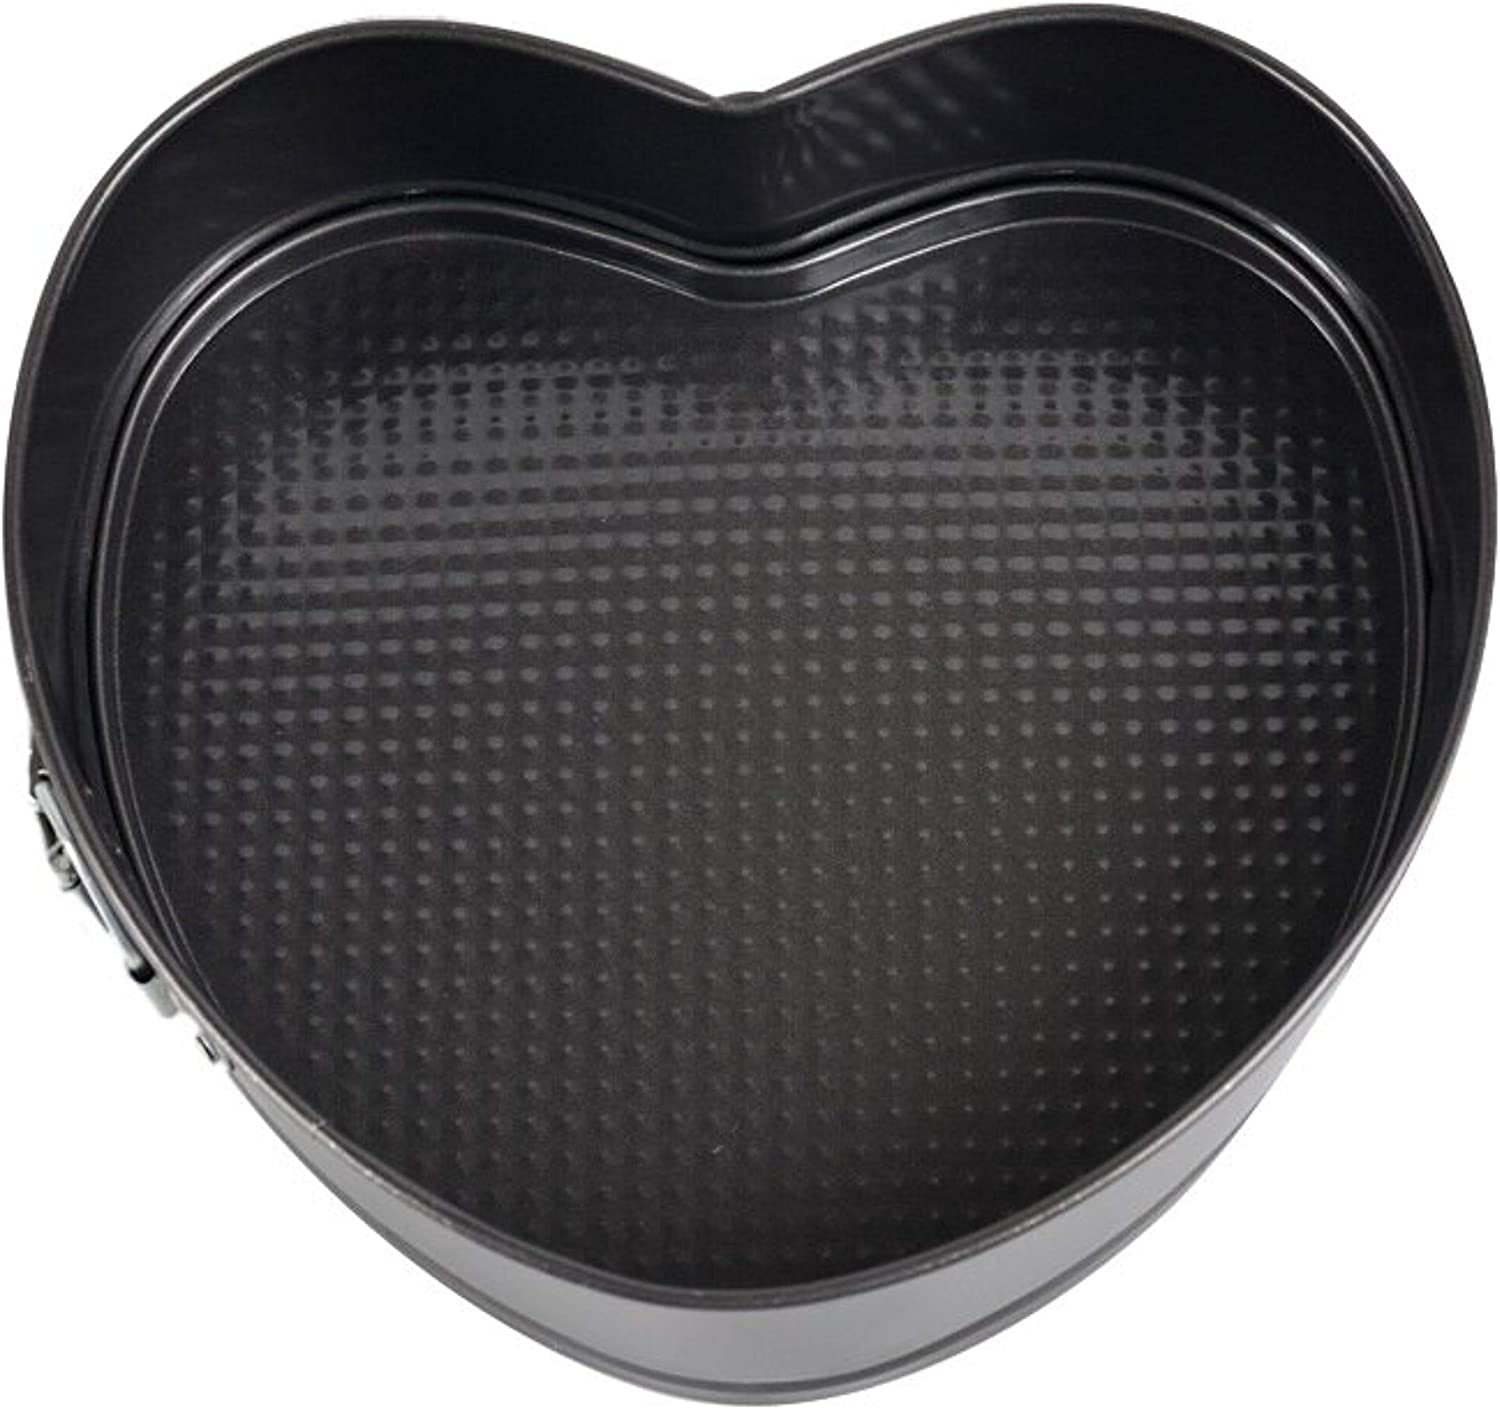 Cake Tin for Baking Heart Shape Non-Stick with Quick Release Spring Form Storage Liner Mold Pans for Wedding Birthday Christmas Sponge Cheese Mousse Red Velvet /& Black Forest Cake